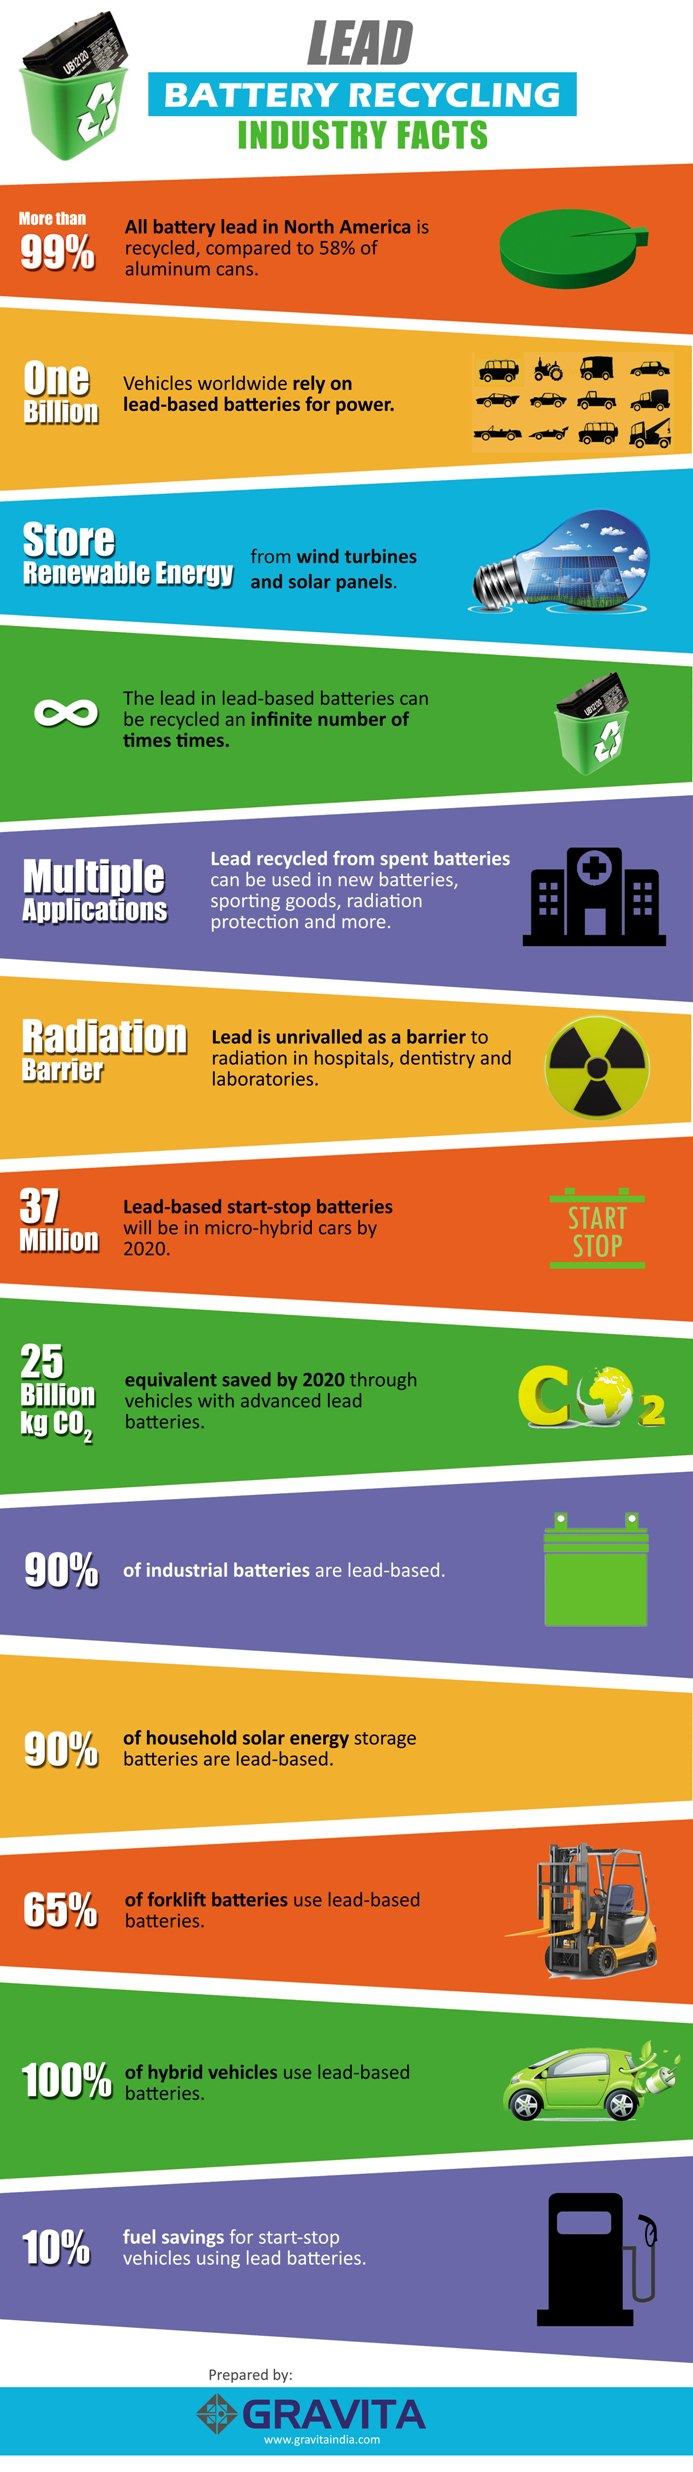 Lead Battery Recycling- Industry facts